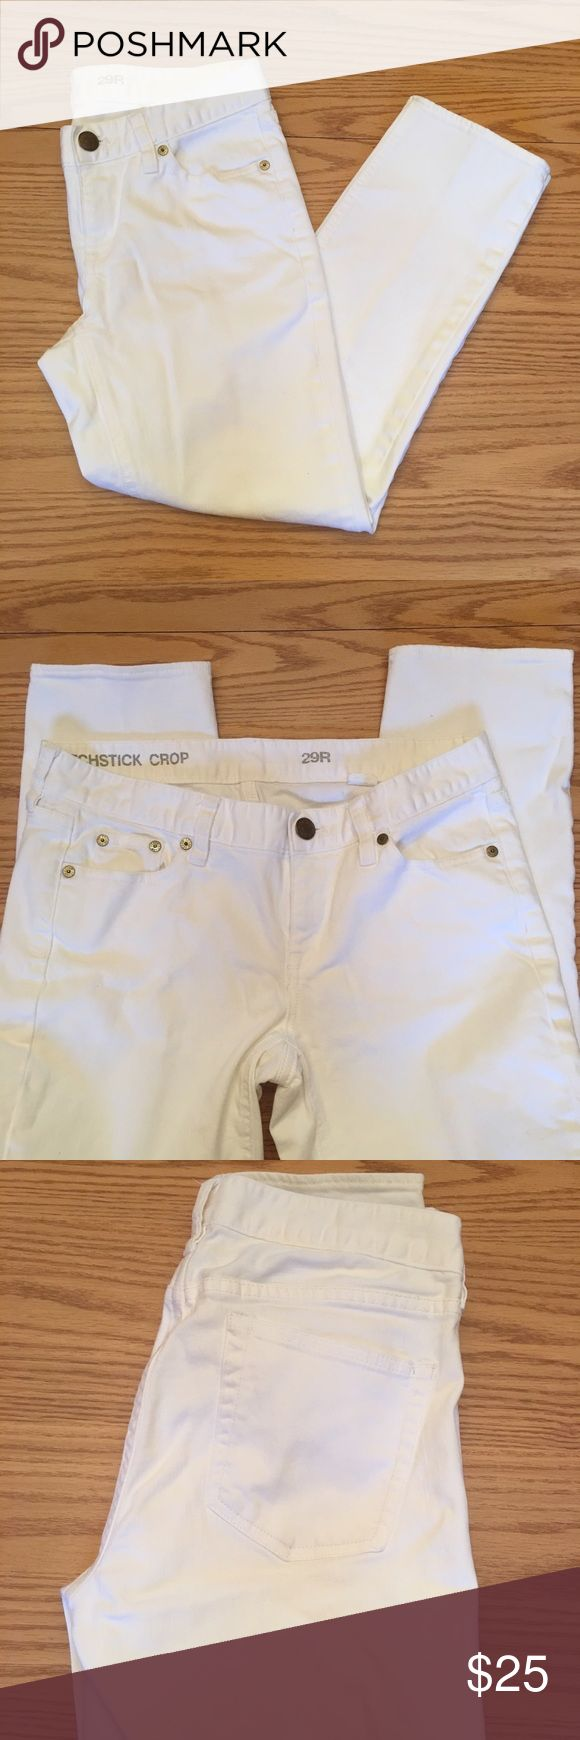 "White J. Crew Matchstick Cropped Jeans These super cute white jeans are cropped with a 25"" inseam. There's time to get a lot of wear out of your white before Labor Day! Make the most of it. Excellent condition. No stains or holes.  ⭐️Same or next day shipping ⭐️I love offers! ❤ ⭐️15% off a bundle of 3+ items ⭐️Additional pictures or measurements upon request ⭐️Measurements are as accurate as possible, but allow for some variability. J. Crew Jeans Ankle & Cropped"